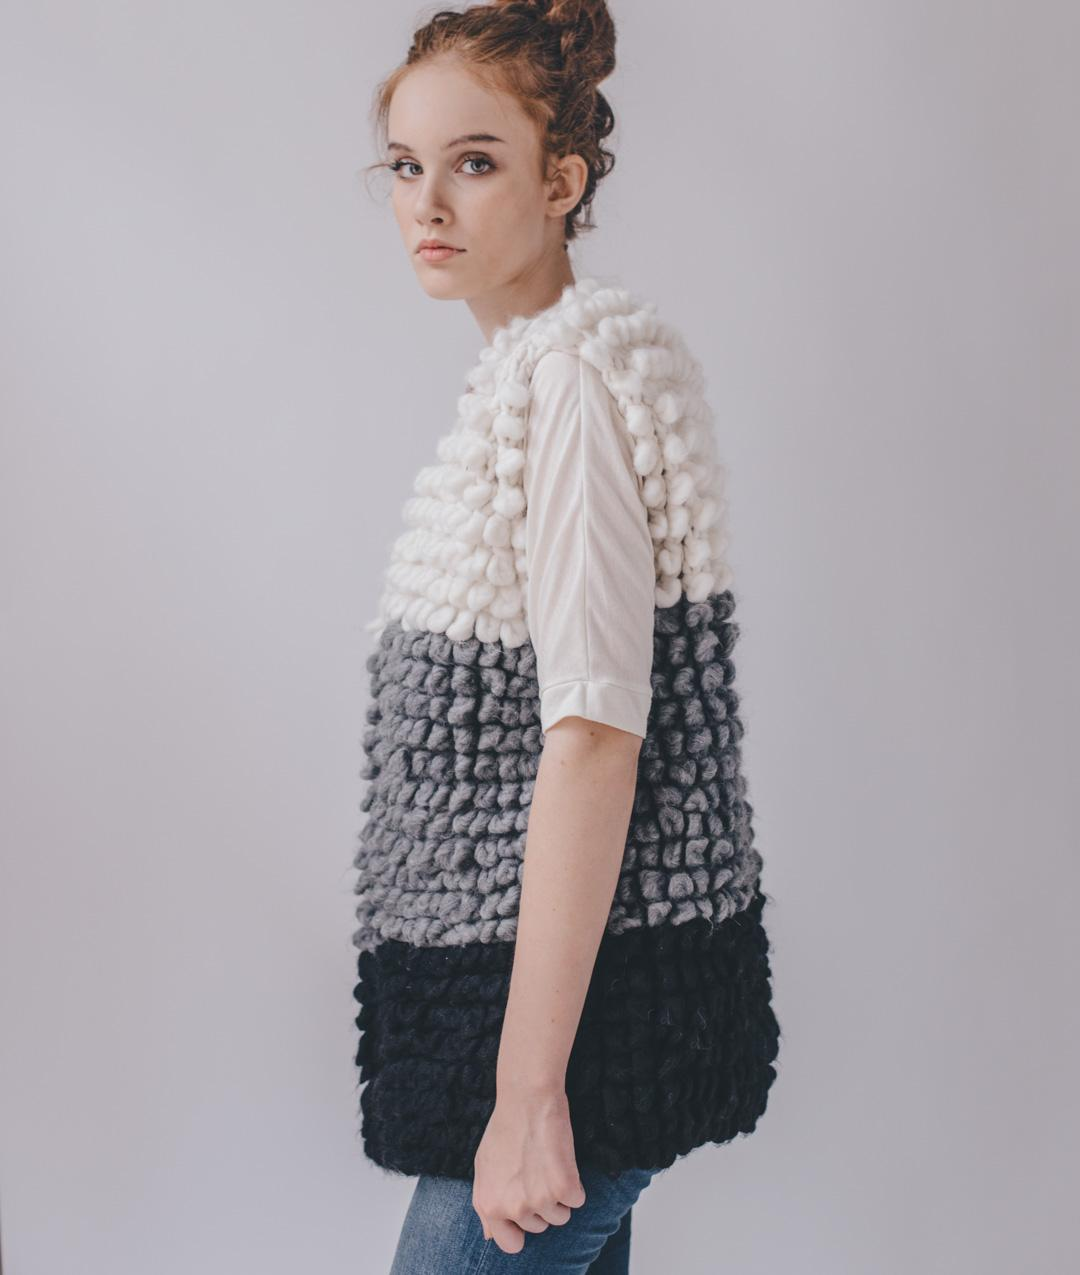 Sweaters and Tops - Wool - Loopy Waistcoat - 1